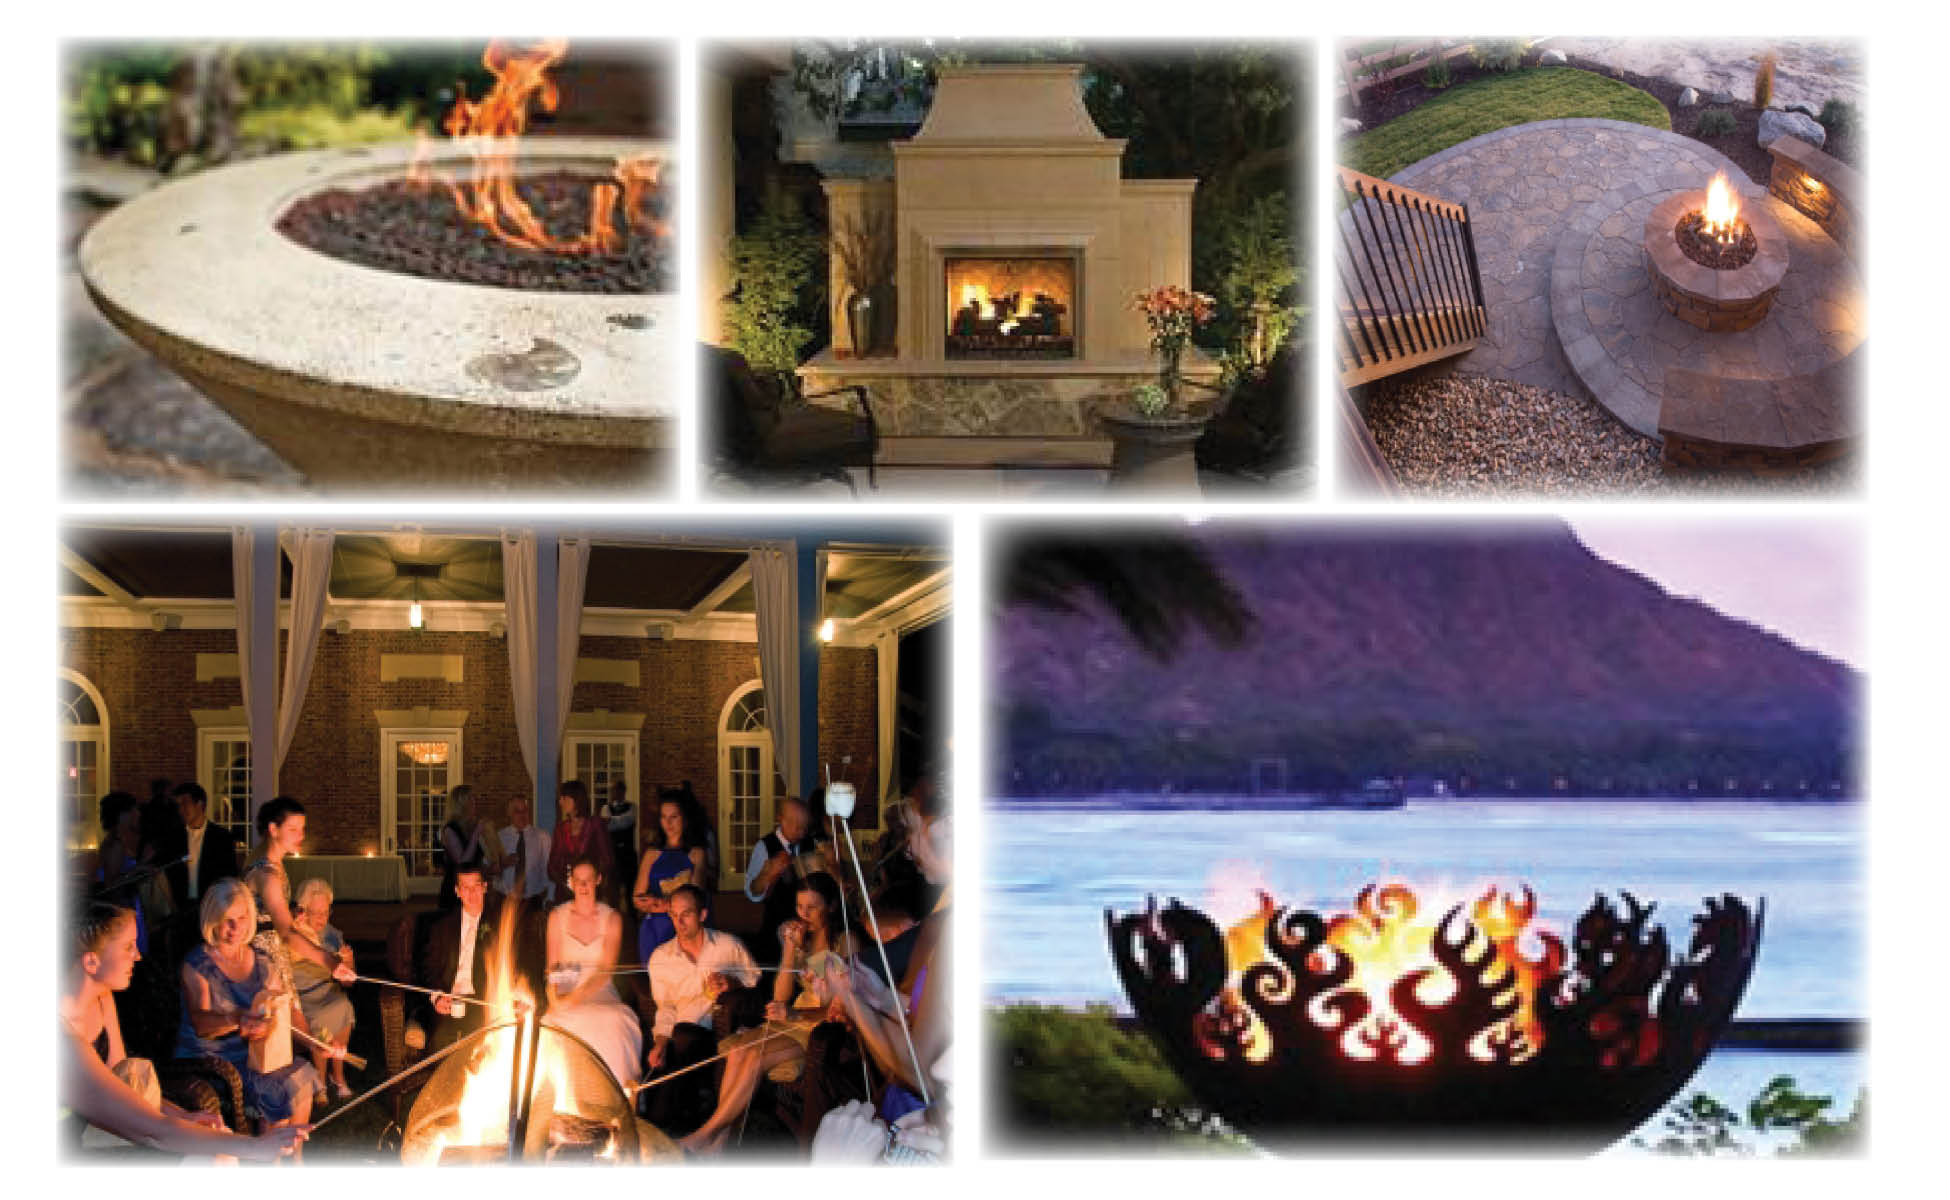 outdoor fire bowl, fire pit, fireplace for patio, backyard, or outdoor living area.